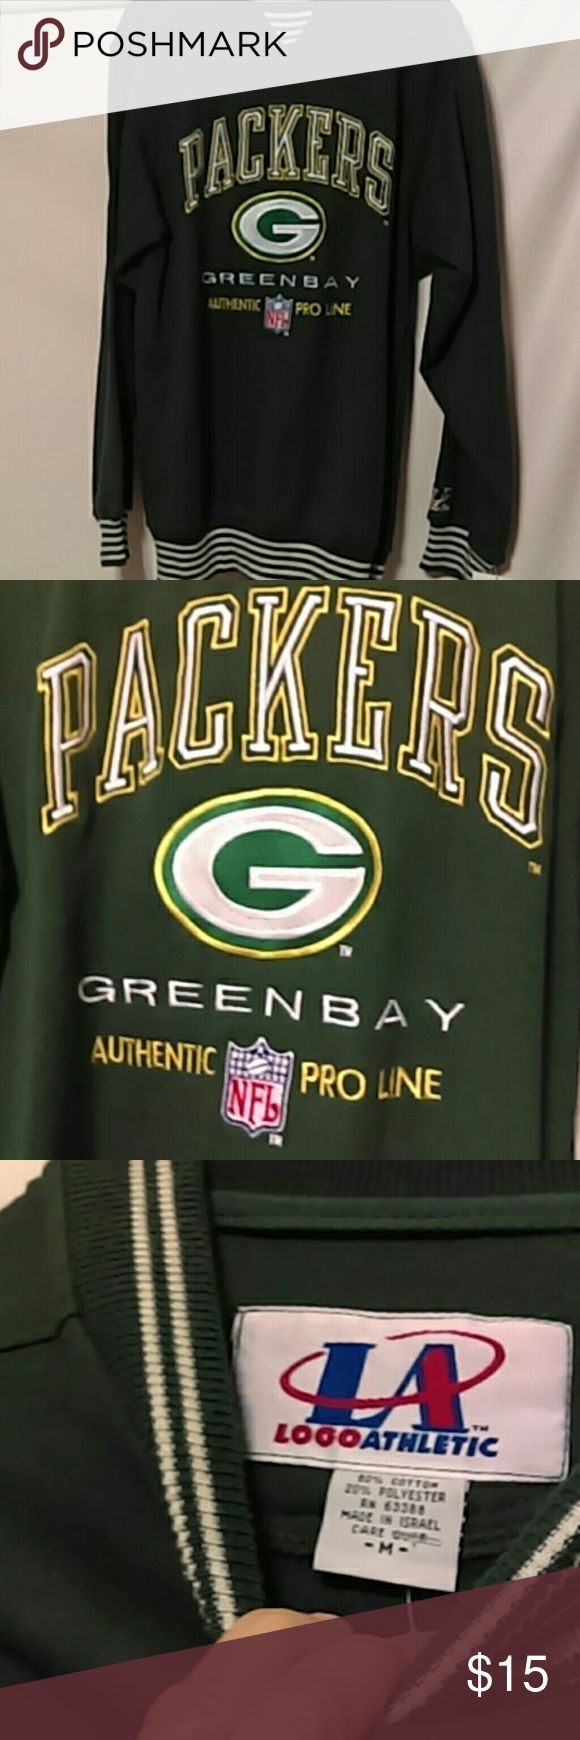 Men's NFL Green Bay Packers Sweatshirt NWT Size Med 80% polyester  20% cotton Green and white striped collar, cuffs and bottom. Smoke free house with 1 cat. Tops Sweatshirts & Hoodies